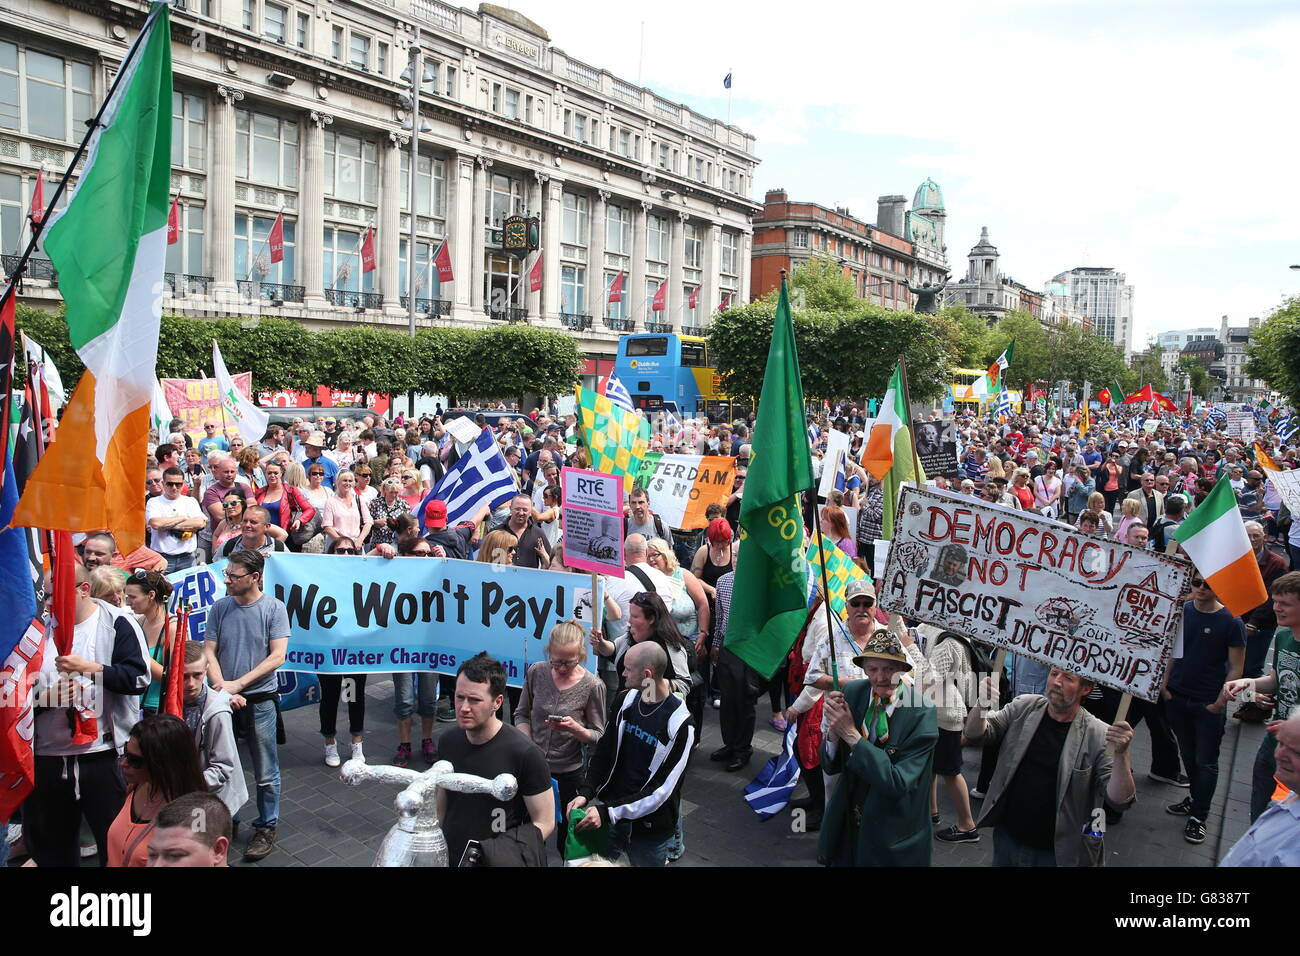 Water charges protest - Stock Image